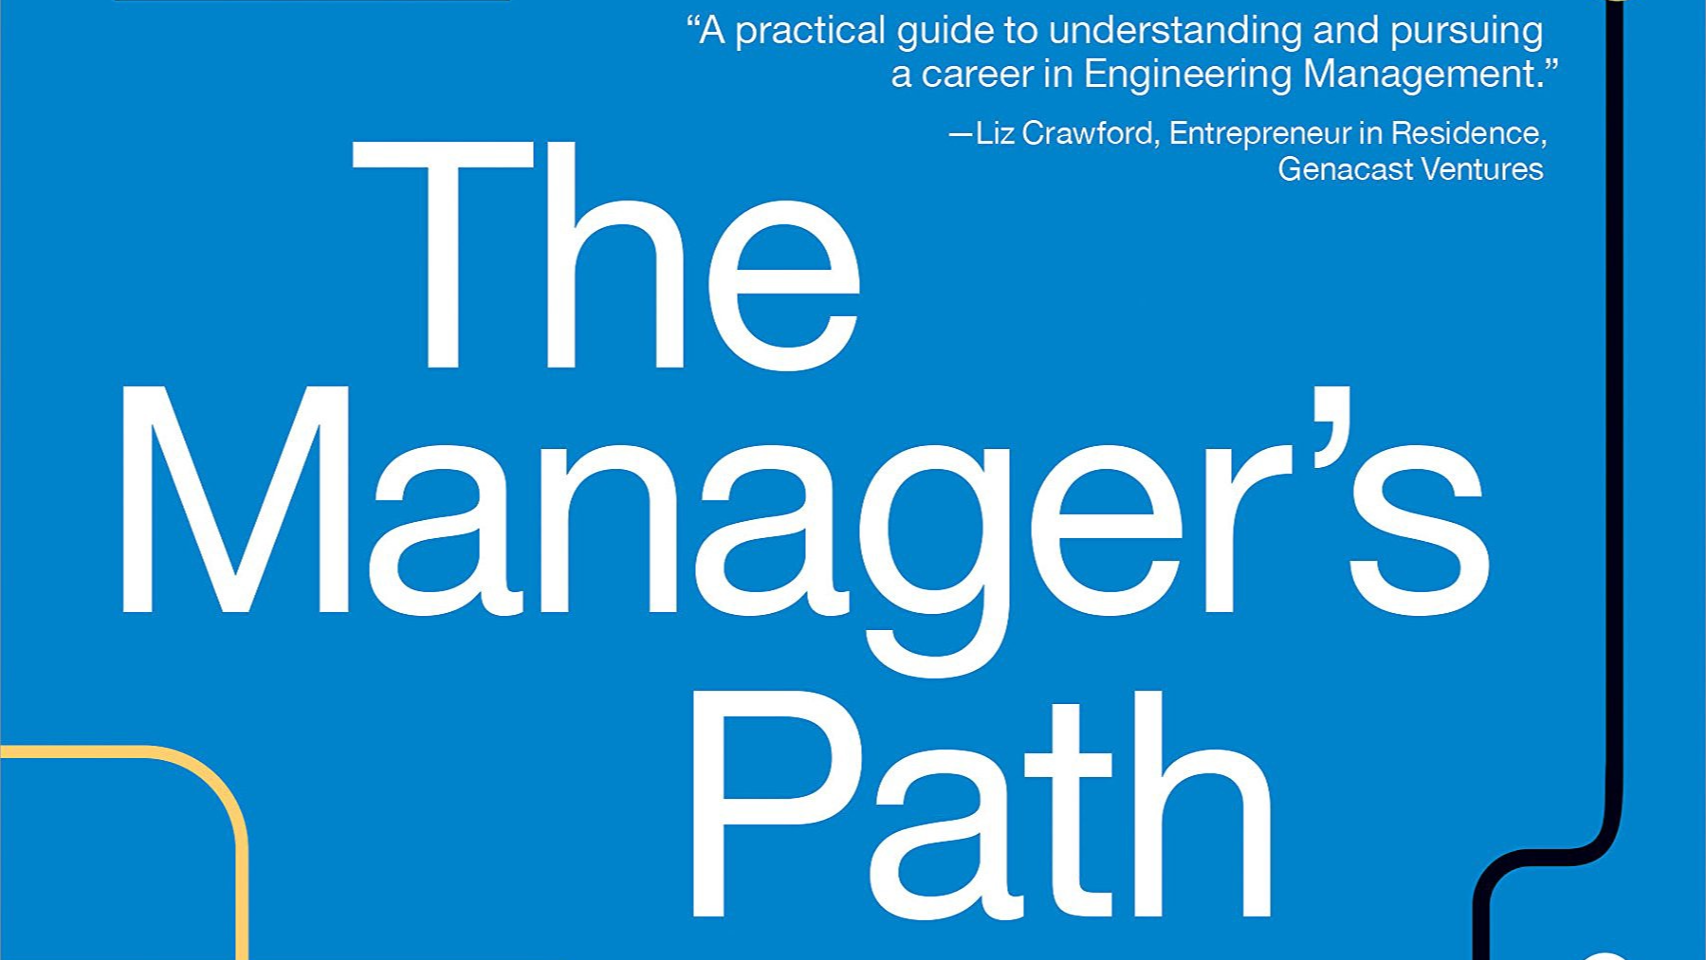 /the-managers-path-by-camille-fournier-book-review-iv323wvk feature image